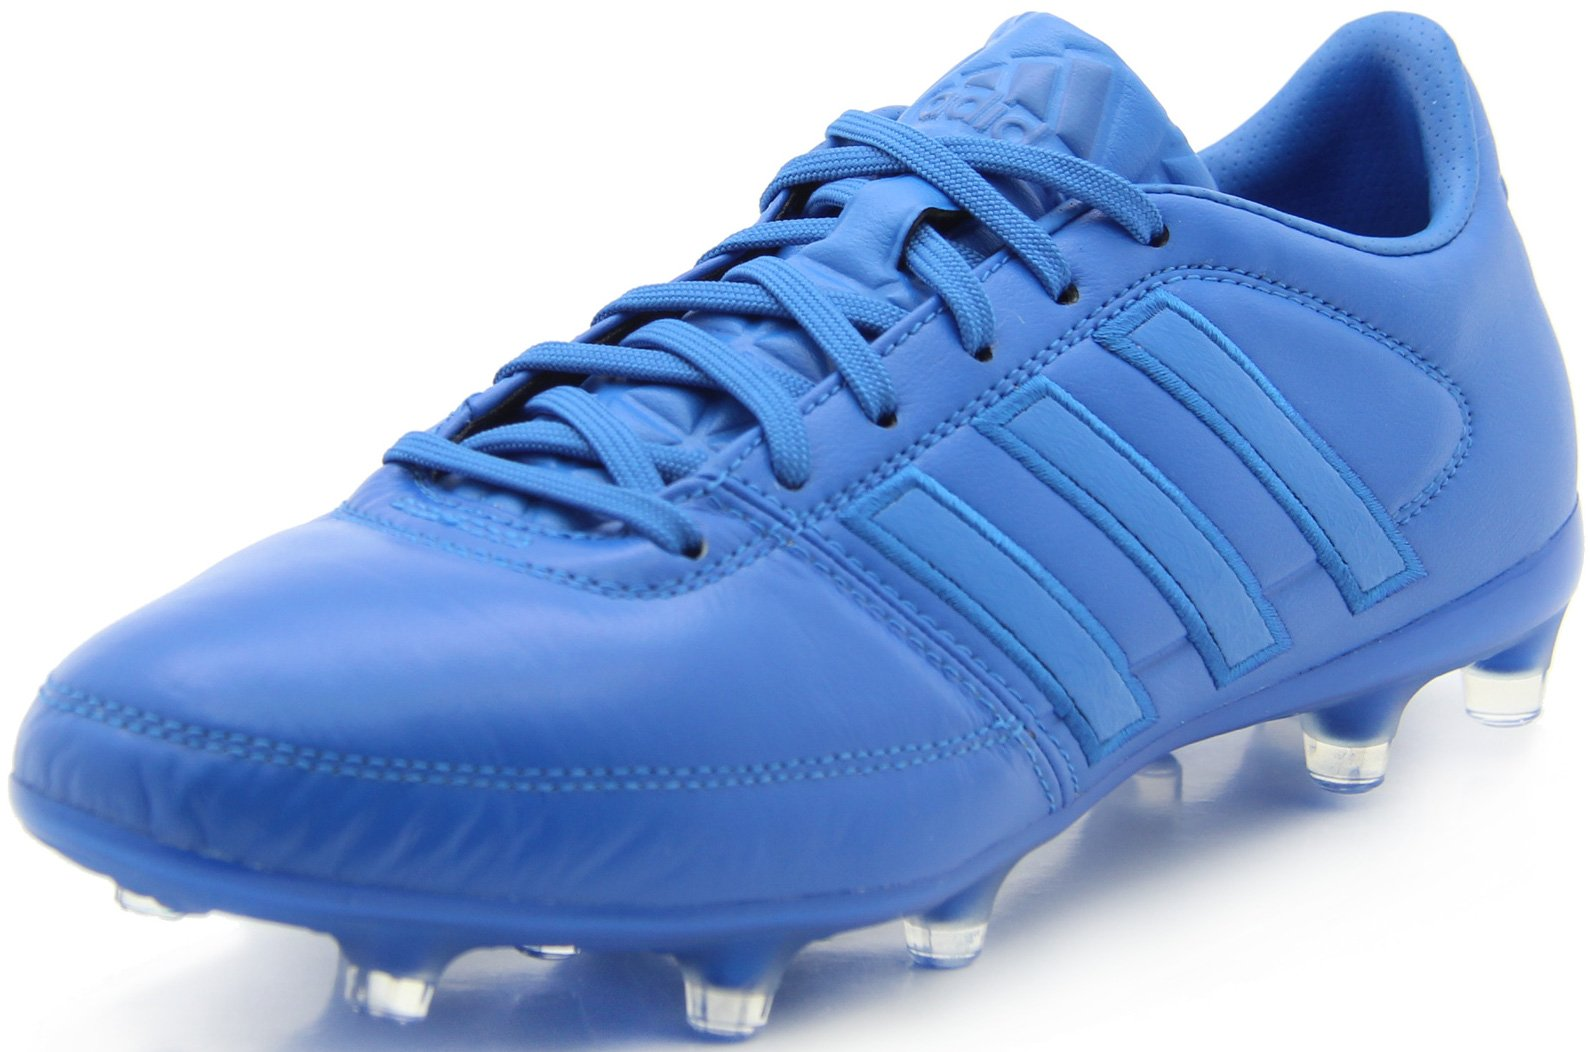 the latest 92fd1 9e620 Galleon - Adidas Men s Soccer Gloro 16.1 Firm Ground Cleats, Vivid  Red Running White Black (6, Shock Blue)